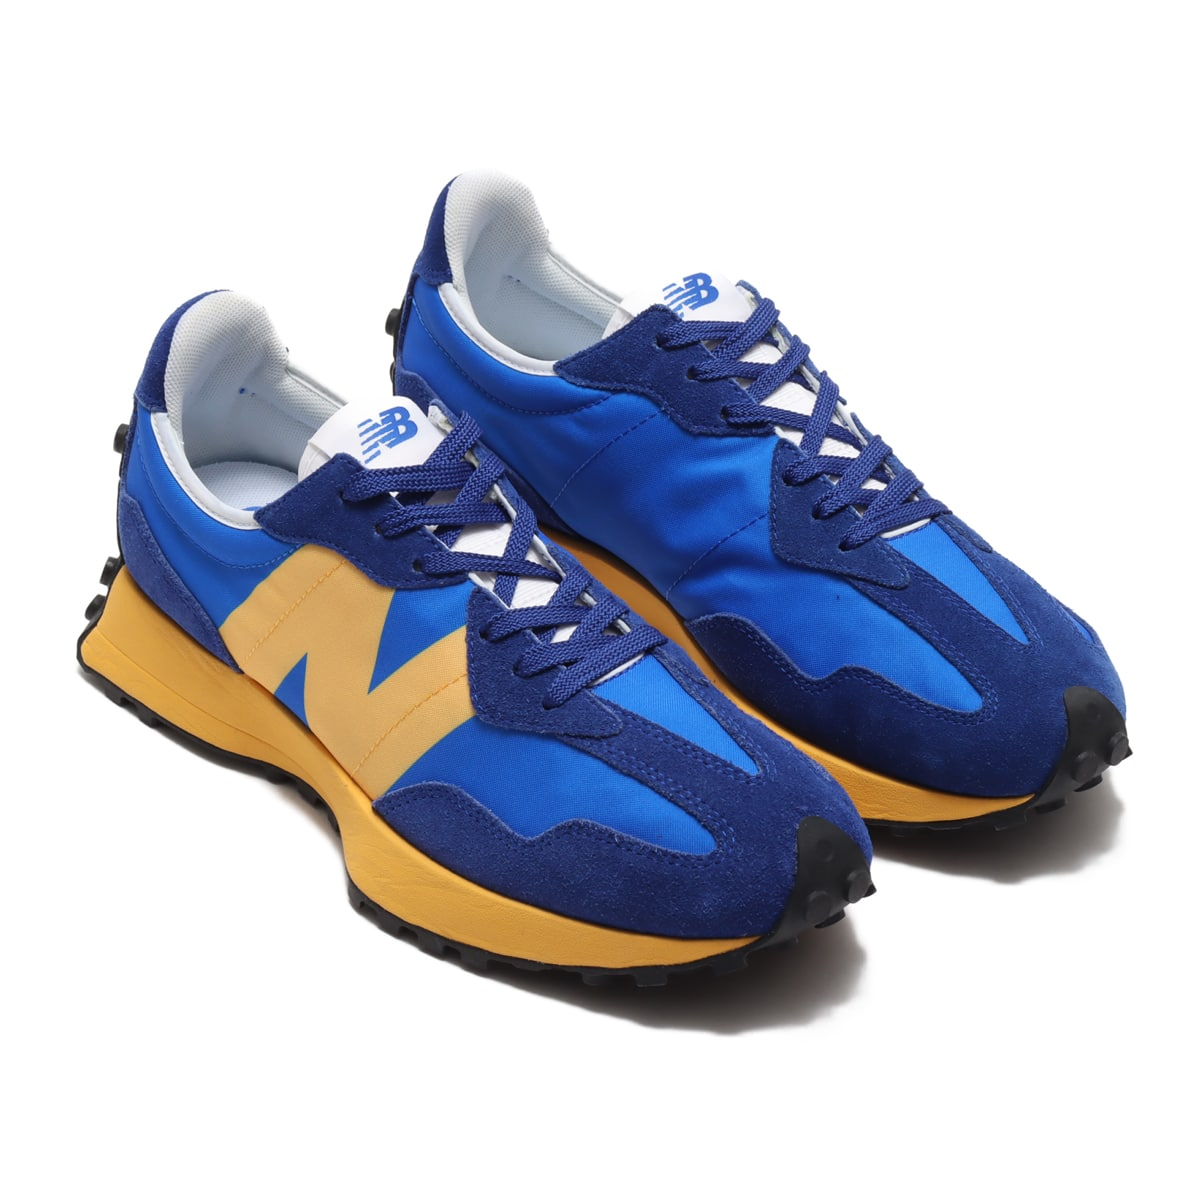 New Balance MS327CLB MARINE BLUE 20FW-I_photo_large